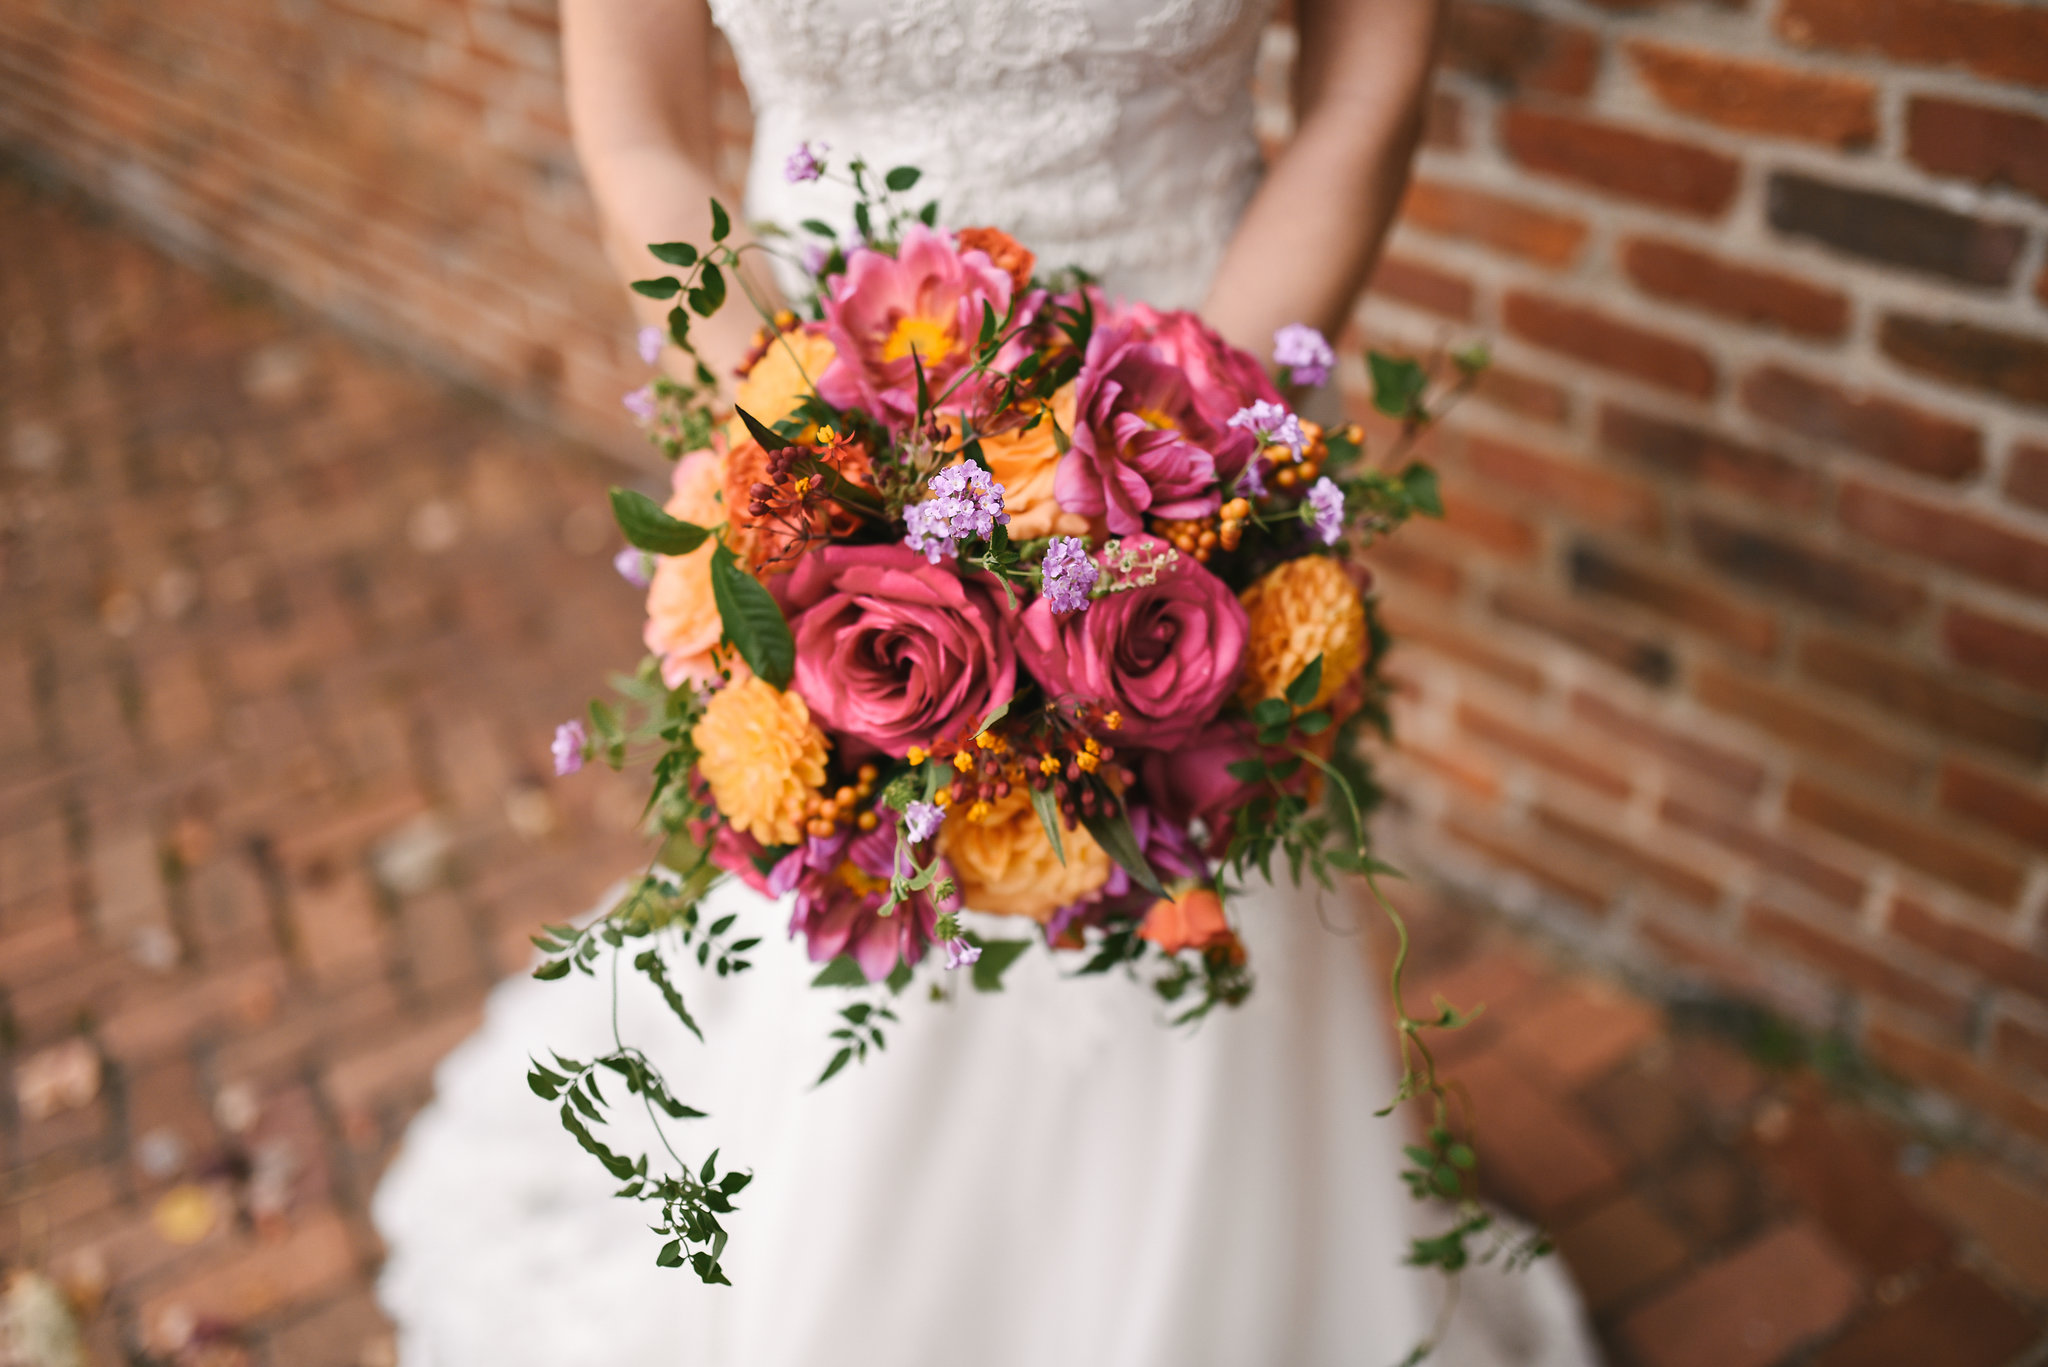 Fall Wedding, Alexandria, DC, Old Town, Wedding Flowers, Detail Photo, The Enchanted Florist Bouquet, Rustic, Romantic, Roses